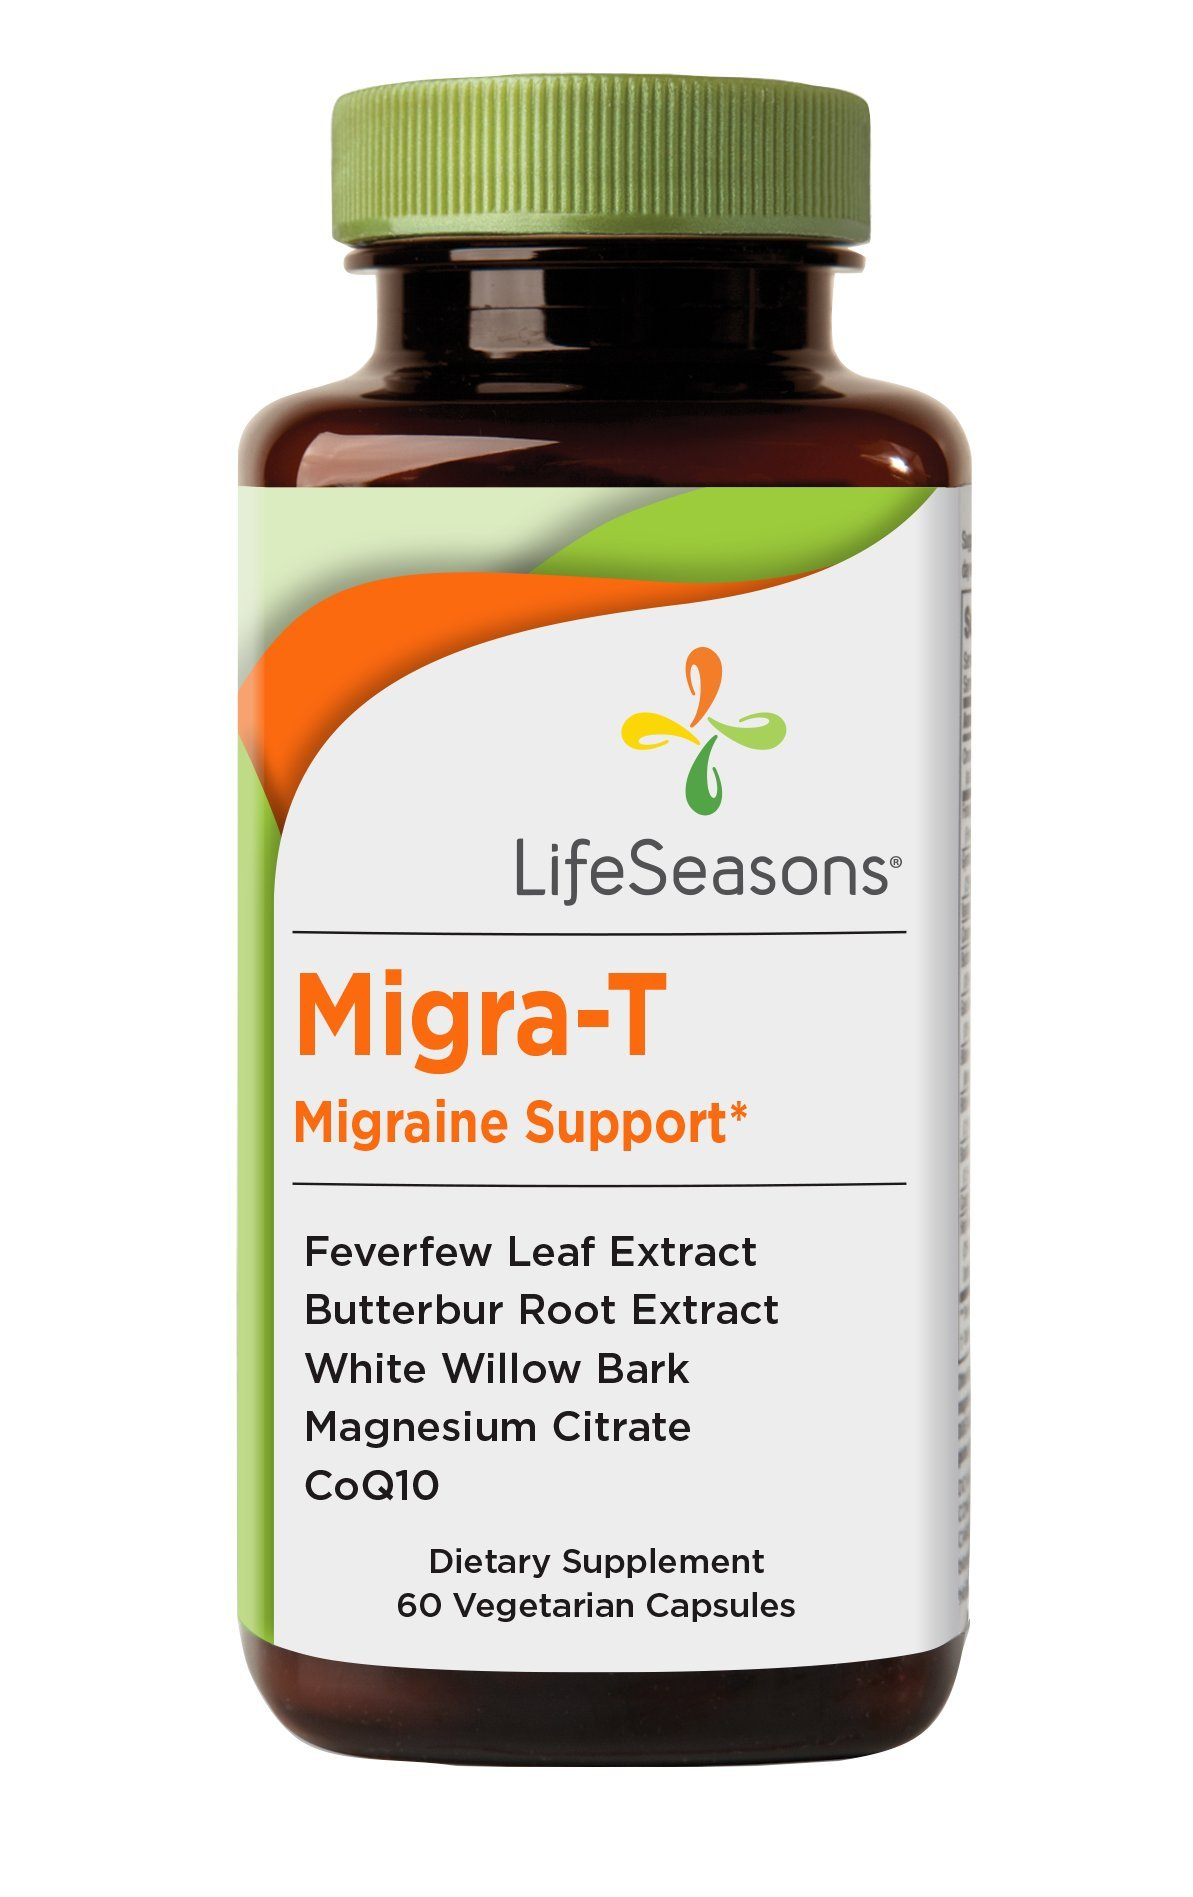 Migra-T - Migraine Prevention Supplement - Natural Migraine Pain Relief - Reduce Light, Sound, and Odor Sensitivity - Contains Feverfew, Butterbur, and CoQ10 - LifeSeasons (60 Capsules)